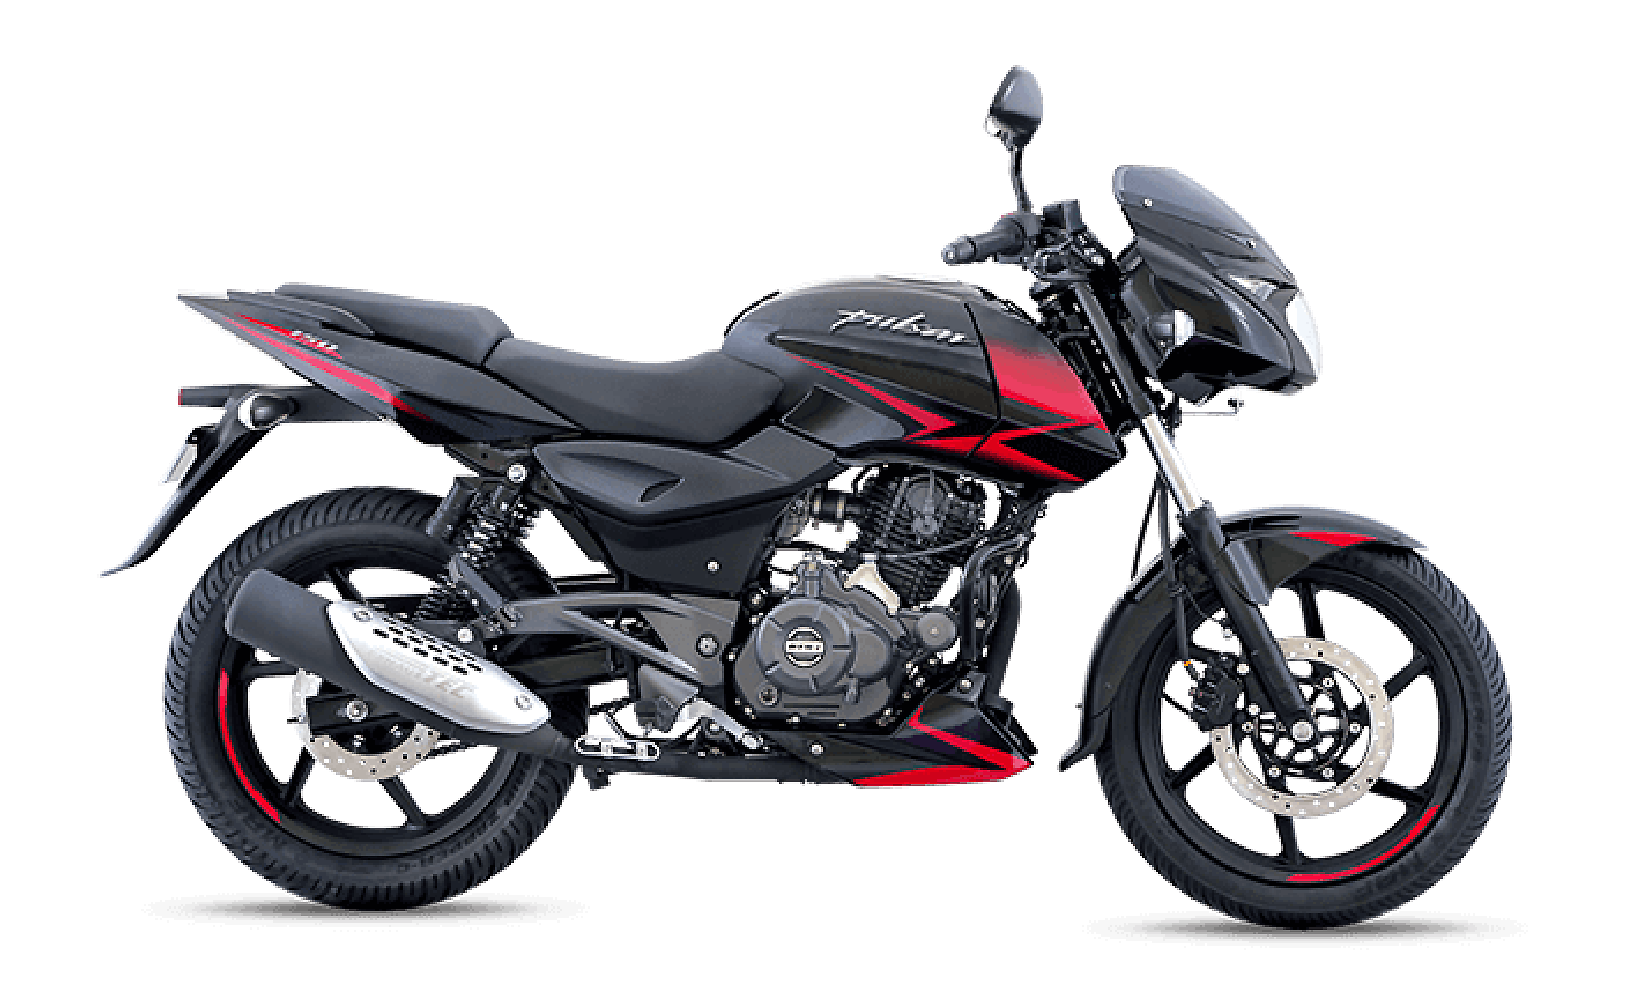 Black and Red Bajaj Pulsar 150cc Twin Disk Motorcycle